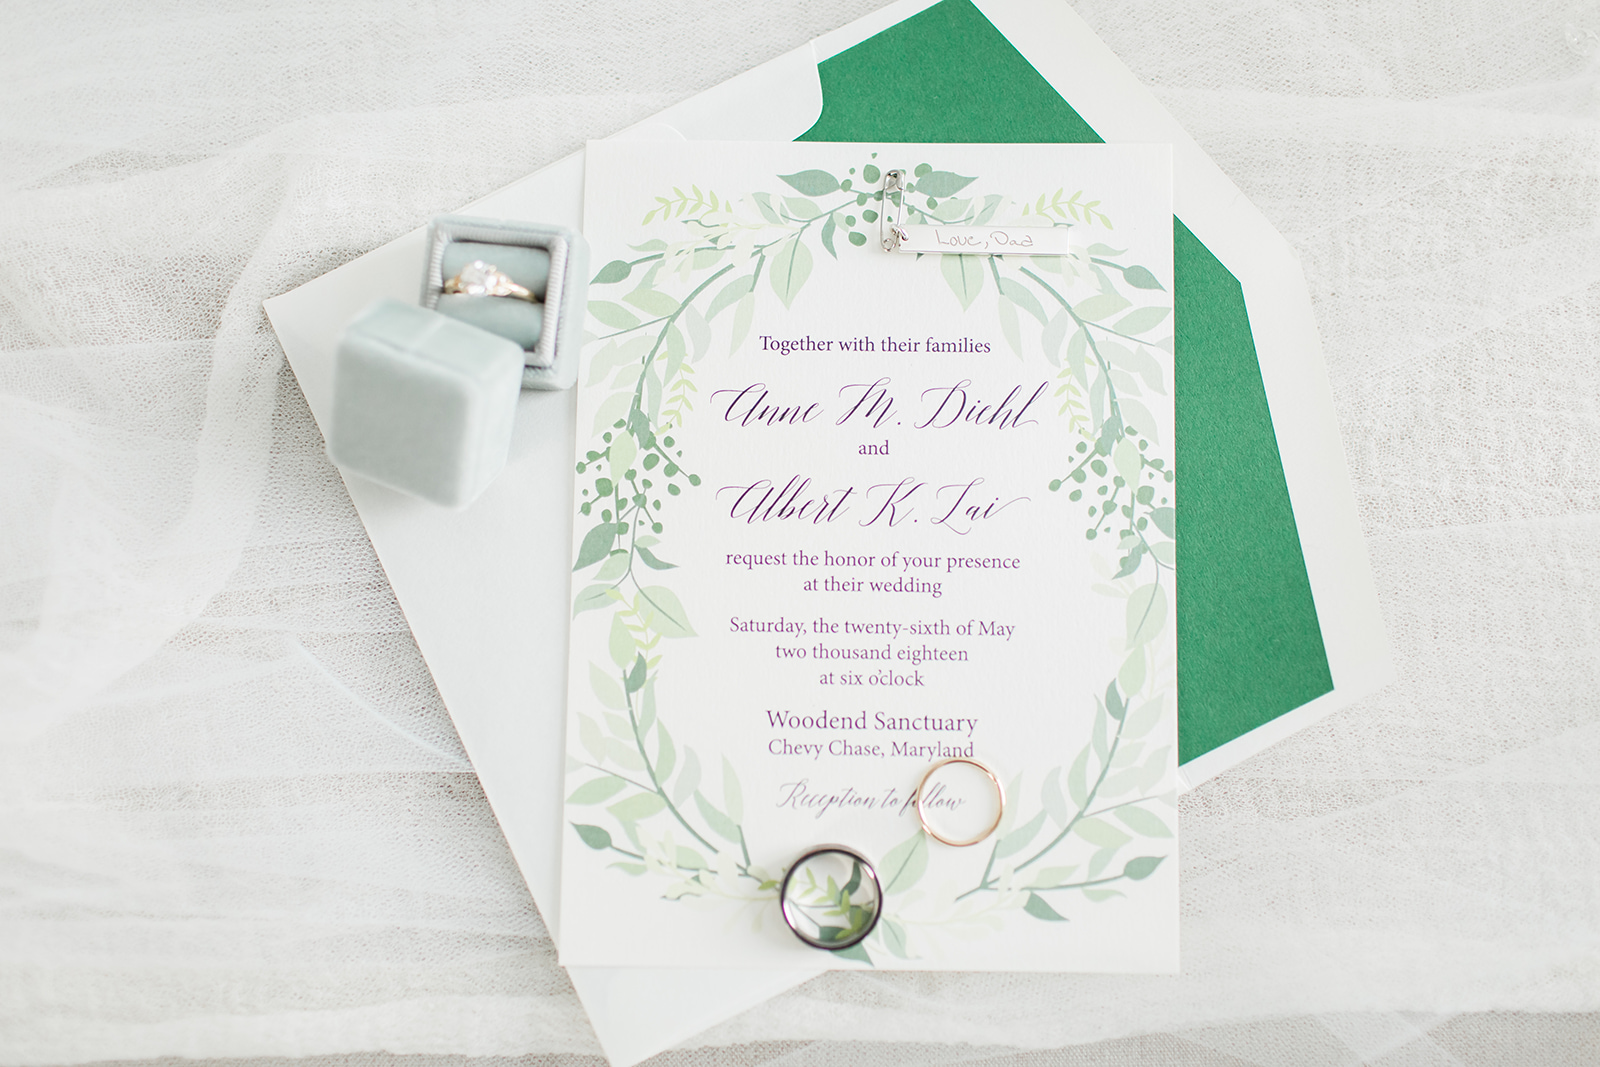 custom invitation wreath of greenery